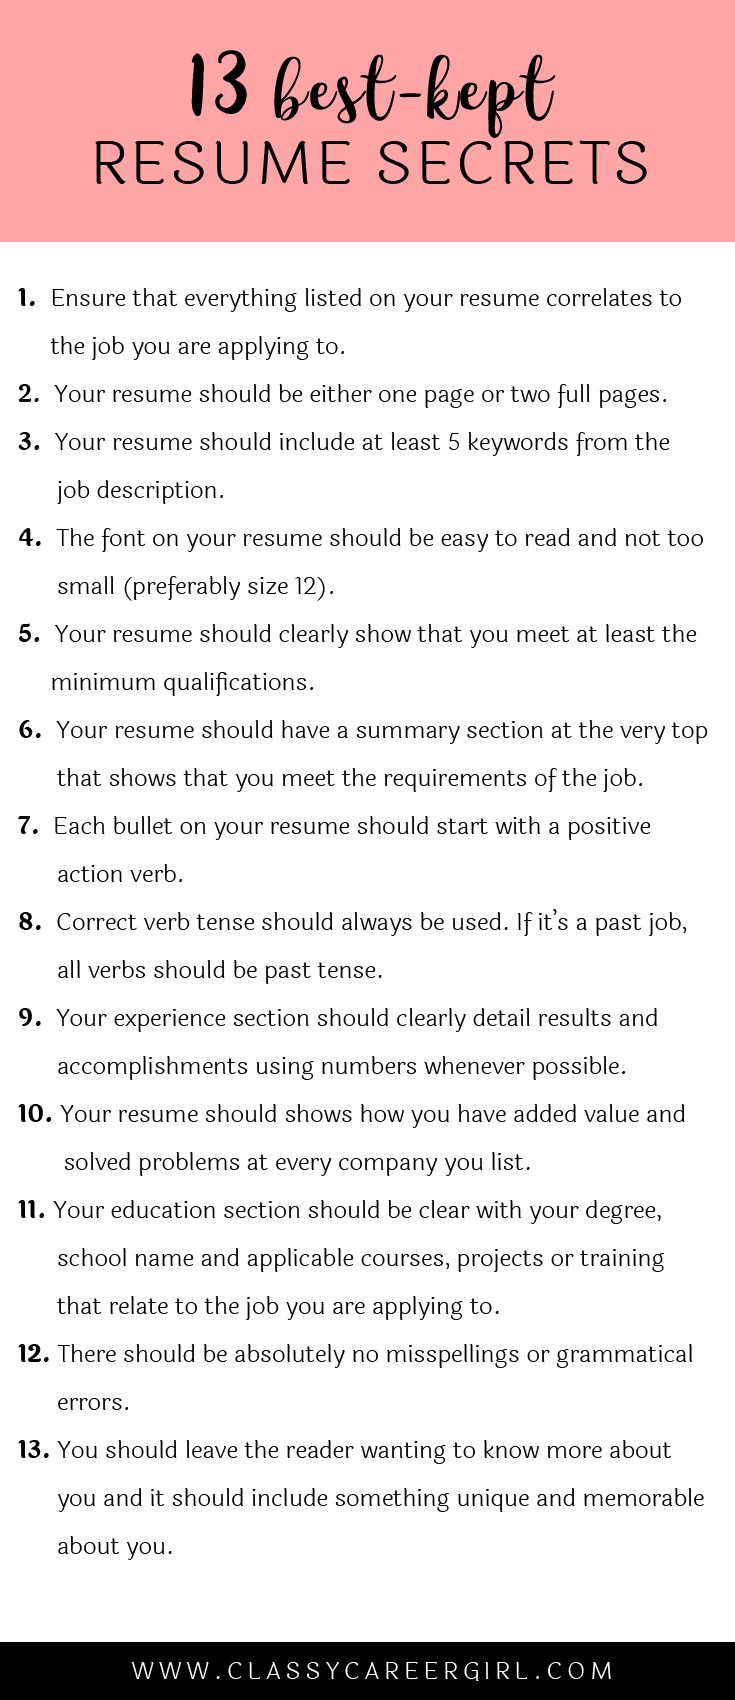 Opposenewapstandardsus  Terrific  Ideas About Resume On Pinterest  Cv Format Resume Cv And  With Foxy Some Hiring Managers Will Toss Your Resume Out If You Dont Know These  With Amusing Examples Of Skills For A Resume Also Science Resume Examples In Addition Summary Resume Samples And How To Do A Cover Letter For Resume As Well As Industrial Design Resume Additionally Fonts To Use For Resume From Pinterestcom With Opposenewapstandardsus  Foxy  Ideas About Resume On Pinterest  Cv Format Resume Cv And  With Amusing Some Hiring Managers Will Toss Your Resume Out If You Dont Know These  And Terrific Examples Of Skills For A Resume Also Science Resume Examples In Addition Summary Resume Samples From Pinterestcom